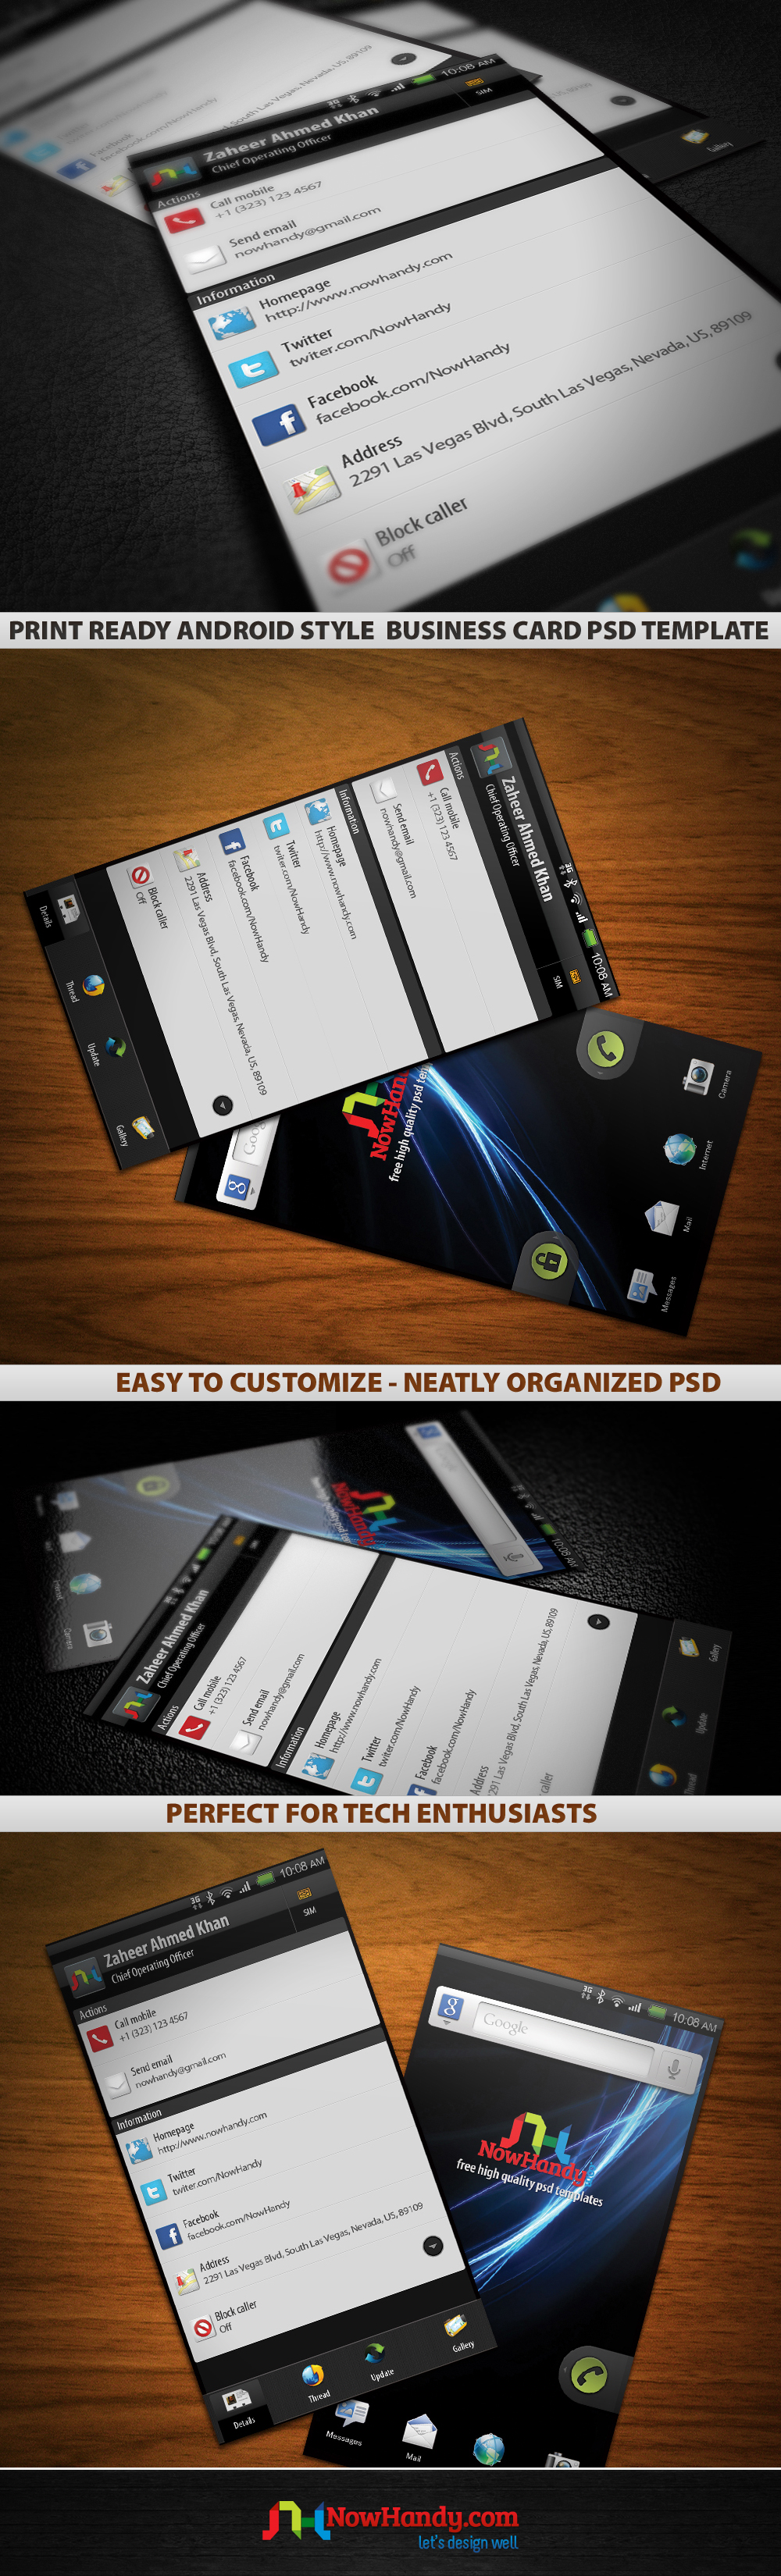 Luxury collection of las vegas business cards business cards and las vegas business cards elegant free print ready android based business card template design psd magicingreecefo Choice Image